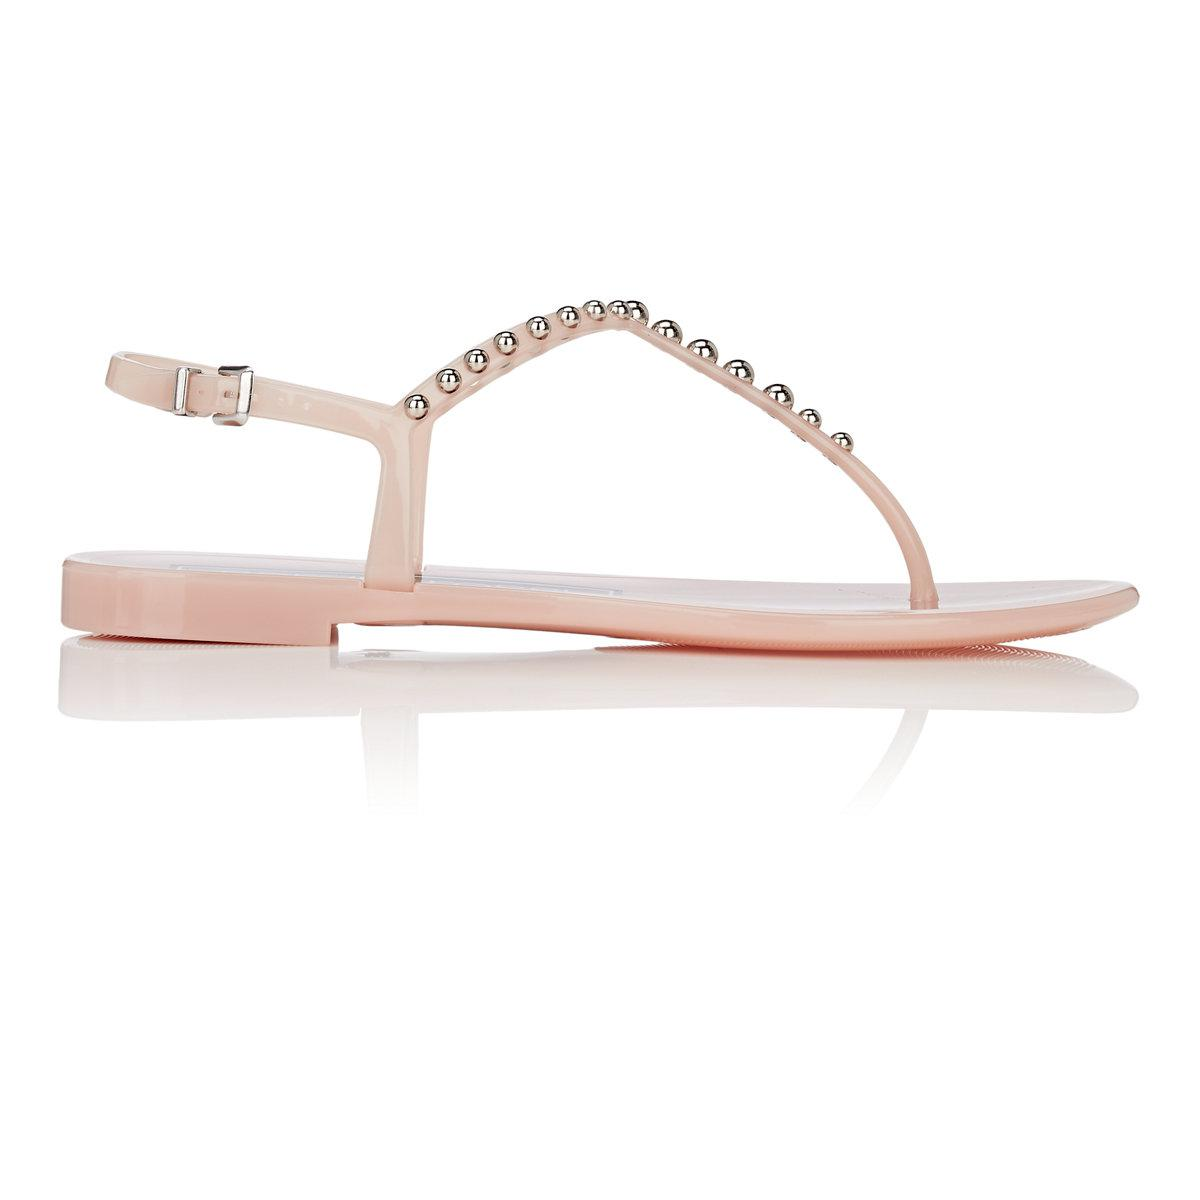 2014 new sale online free shipping Sergio Rossi Studded PVC Thong Sandals j1uS2n1